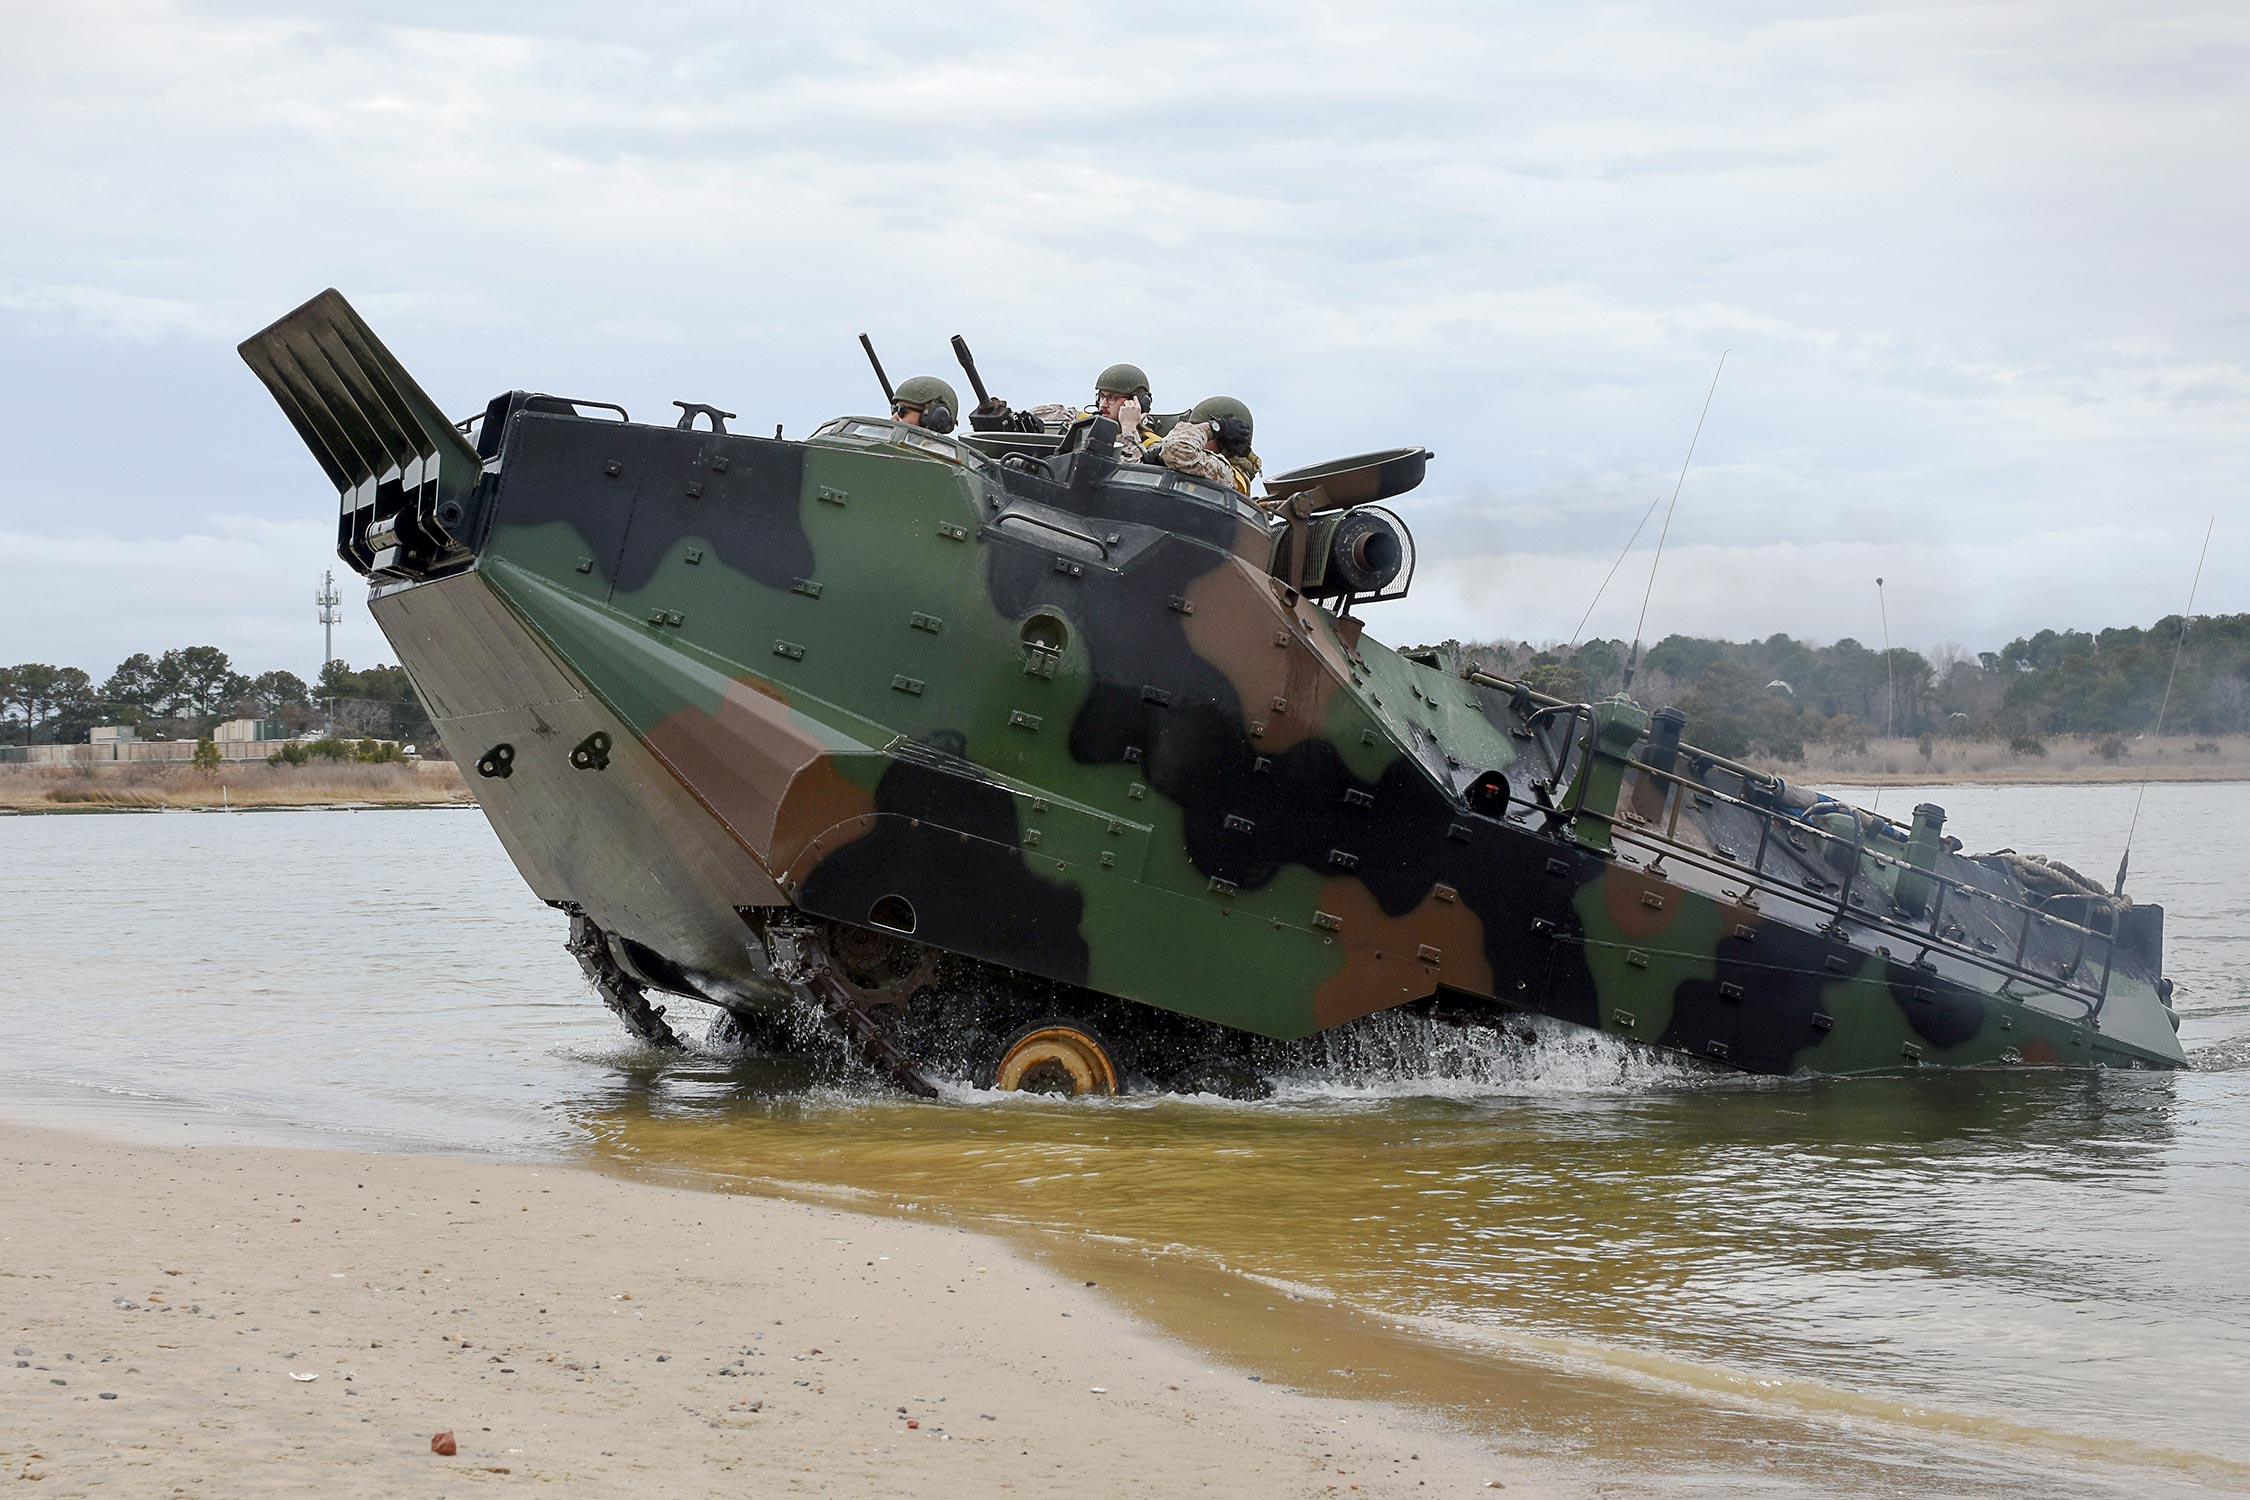 Bae To Produce 36 Assault Amphibious Vehicles For Taiwan